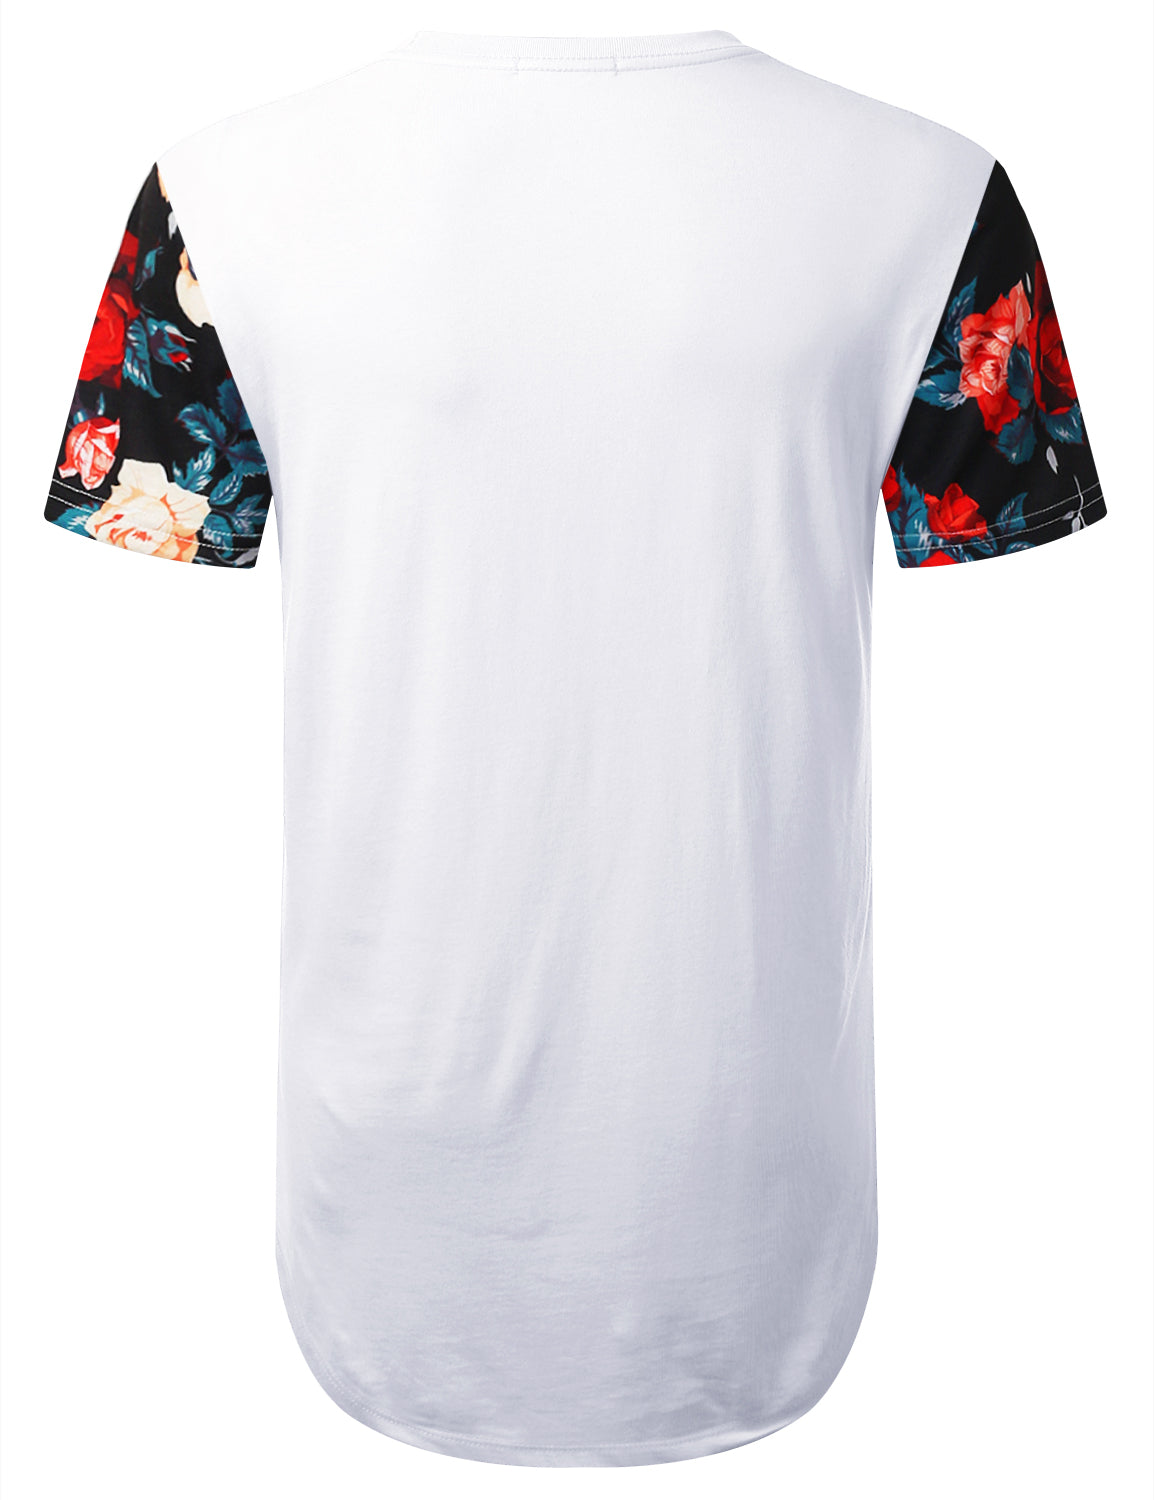 WHITE Athletic 88 Floral Longline T-shirt - URBANCREWS